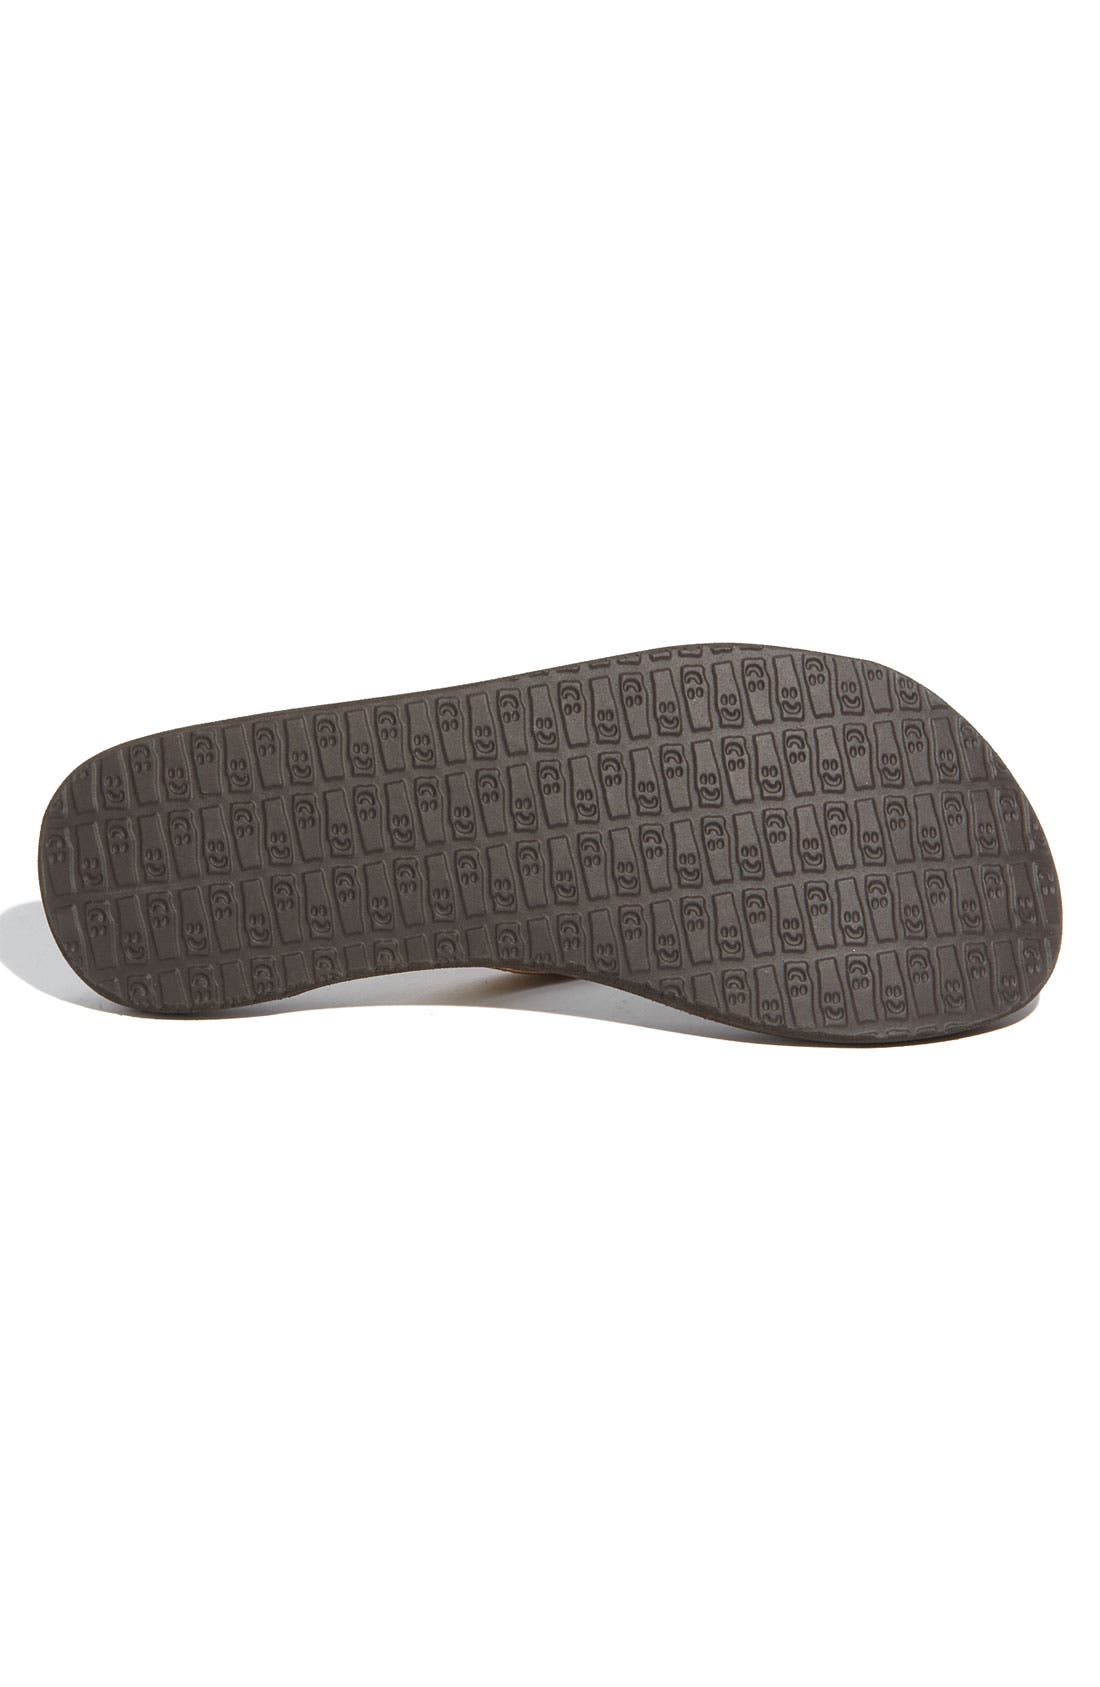 Alternate Image 4  - Sanuk 'Yoga Spree' Flip Flop (Women)